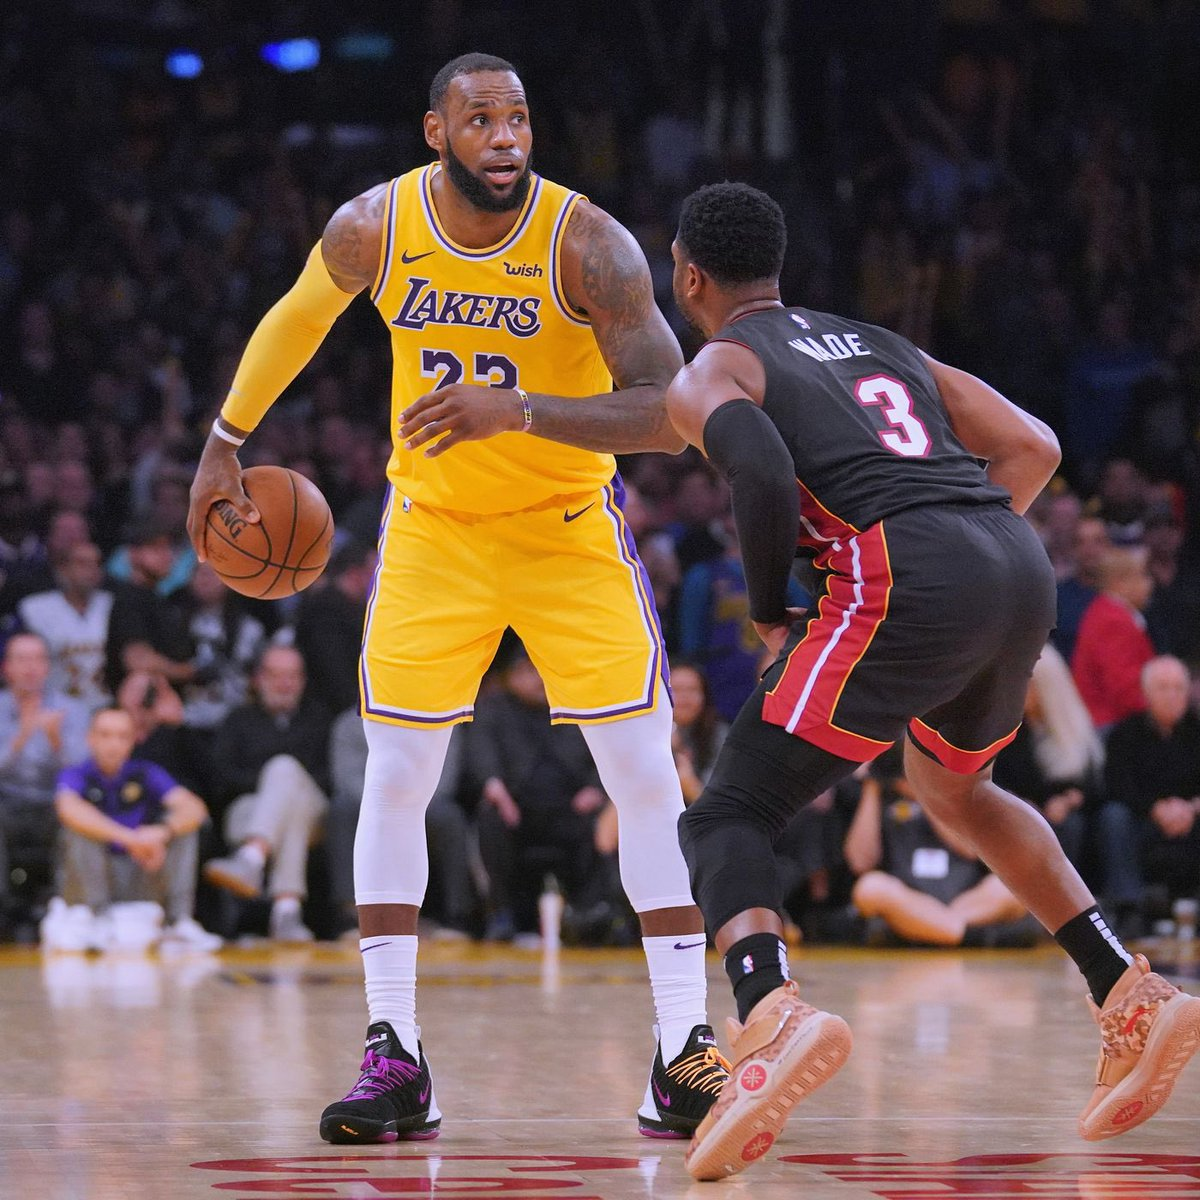 2 years ago today, Dwyane Wade and LeBron James faced off for the final time. It was a sad night for NBA fans, as we all watched these two from the start. Before the game, they were 15-15 against each other, but LeBron's Lakers came out on top. Can't believe it's been 2 years. 😞